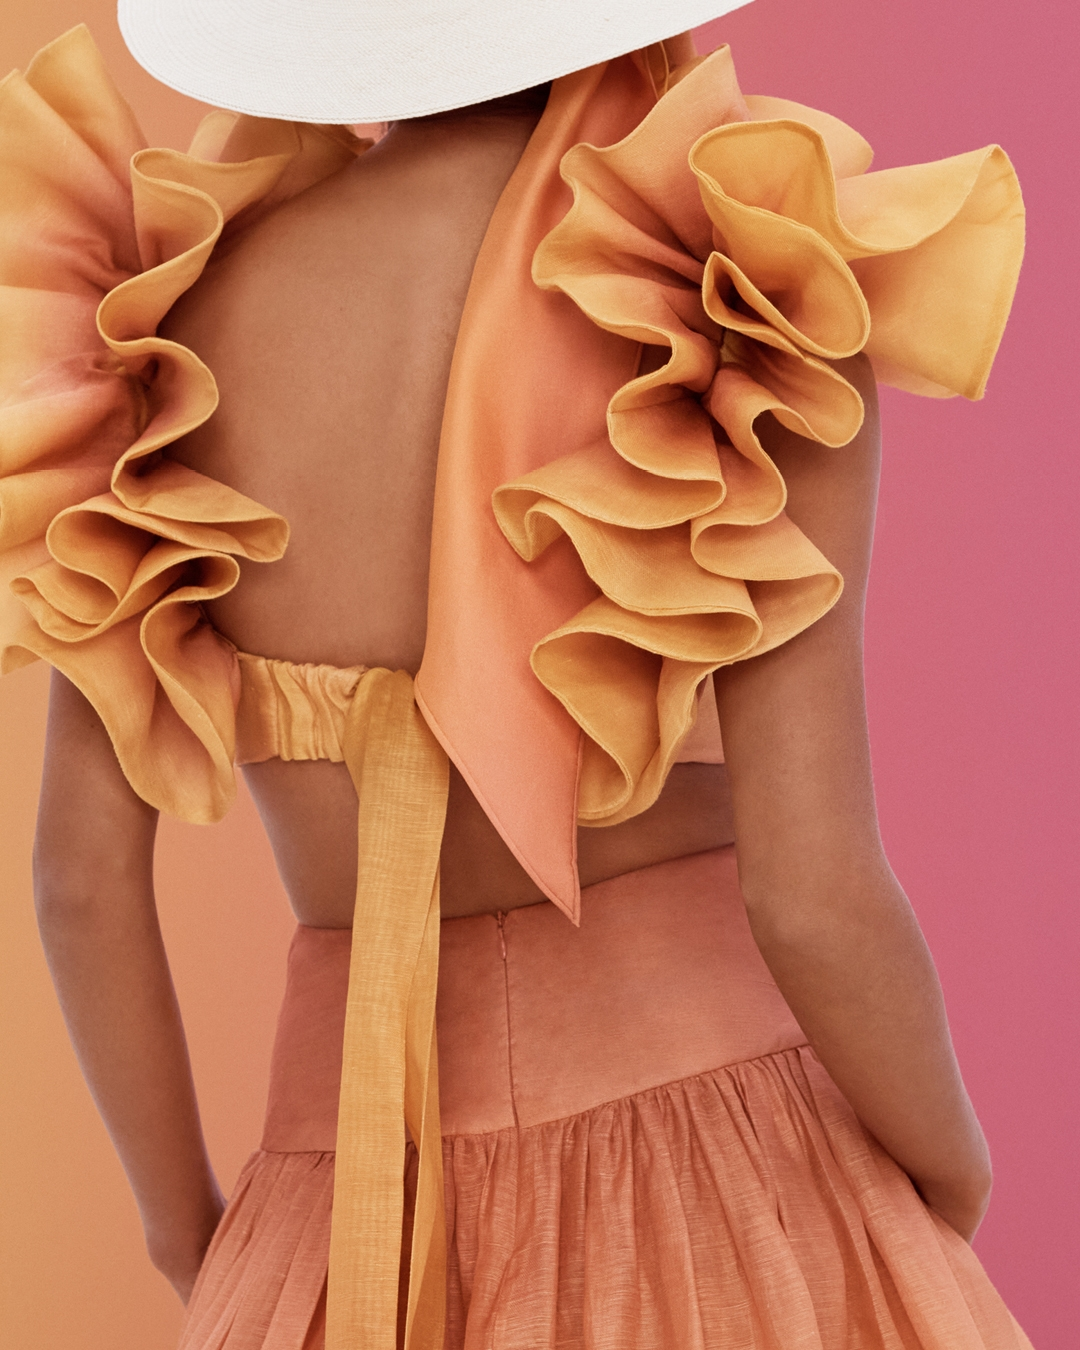 IN THE DETAIL: LOOK 38 RESORT READY TO WEAR 2022, THE POSTCARD